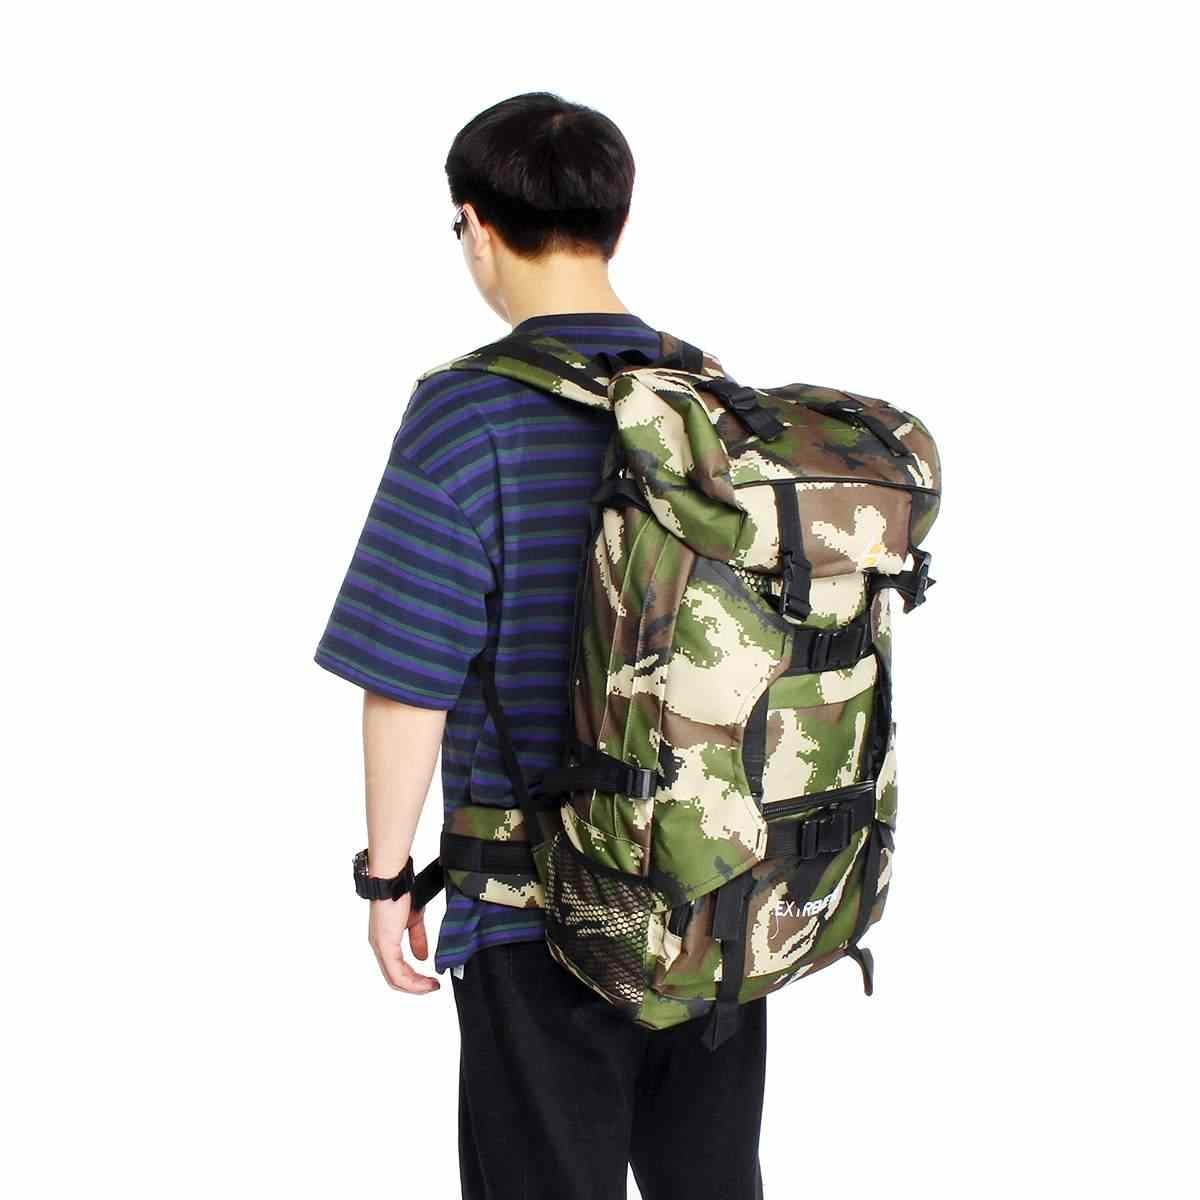 New Army Military Style Hiking Outdoor Backpack Rucksack Daypack camouflage 120L